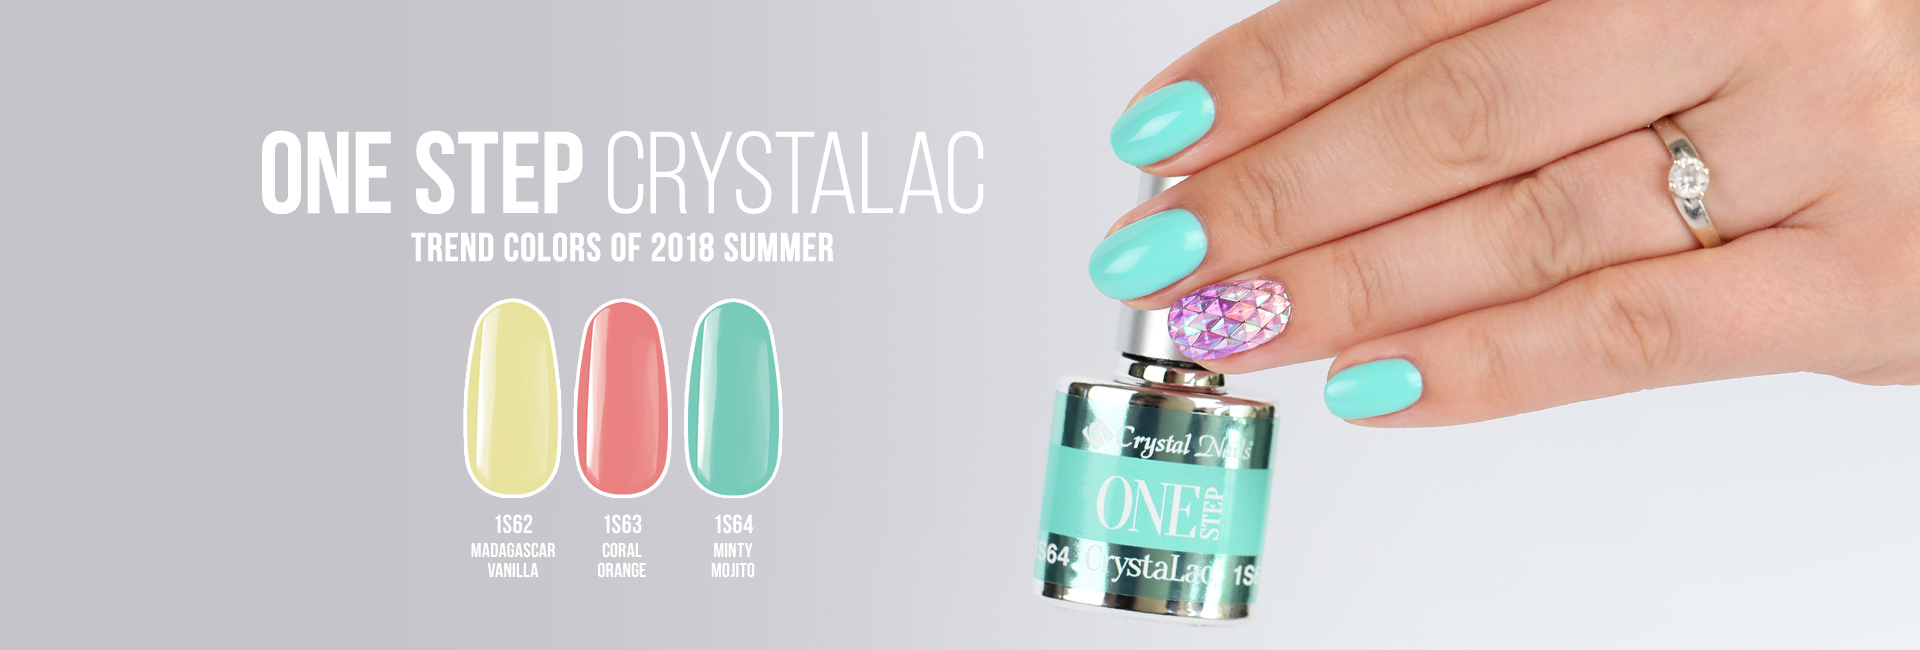 Crystal Nails - the Champions\' brand